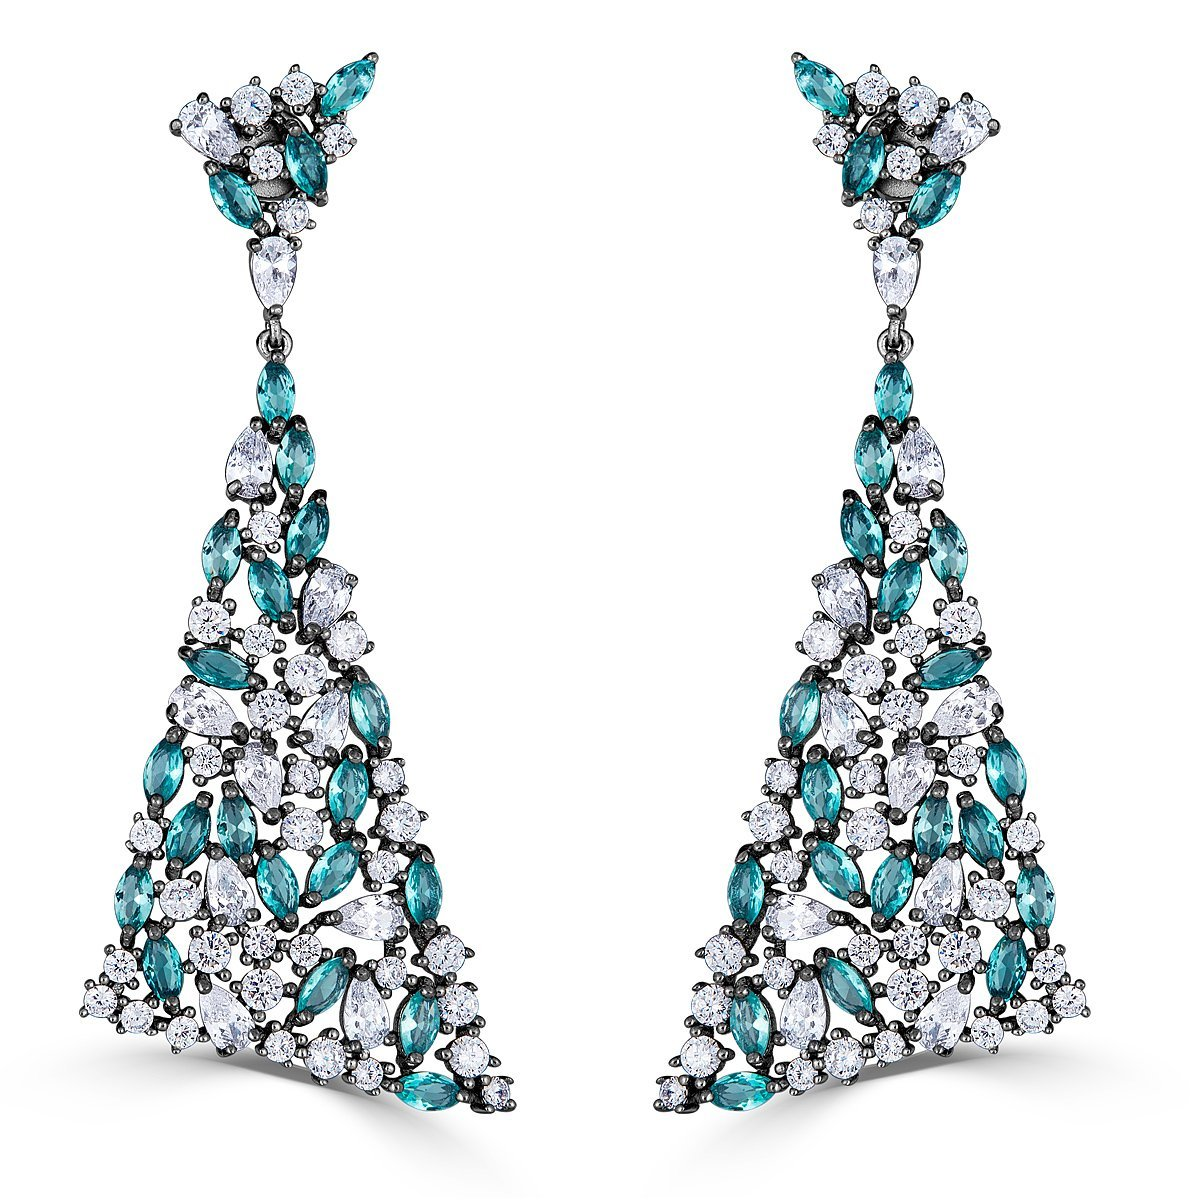 Black Rhodium Sterling Silver Cubic Zirconia Dangle Triangle Earrings by Caratina (Image #1)